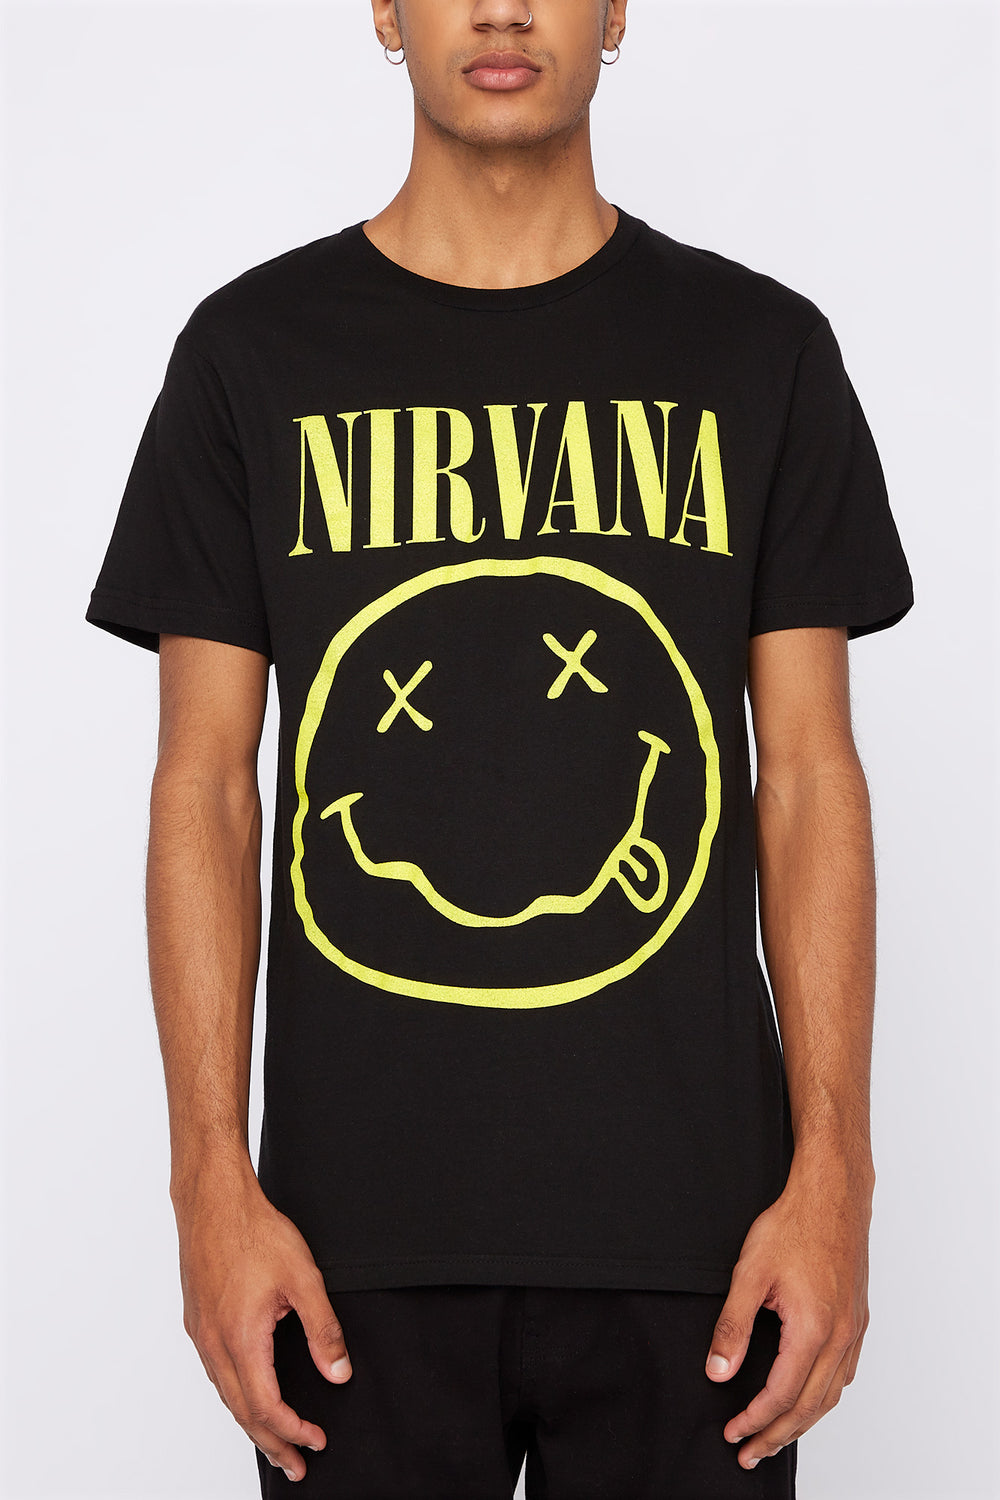 Nirvana Mens T-Shirt Black